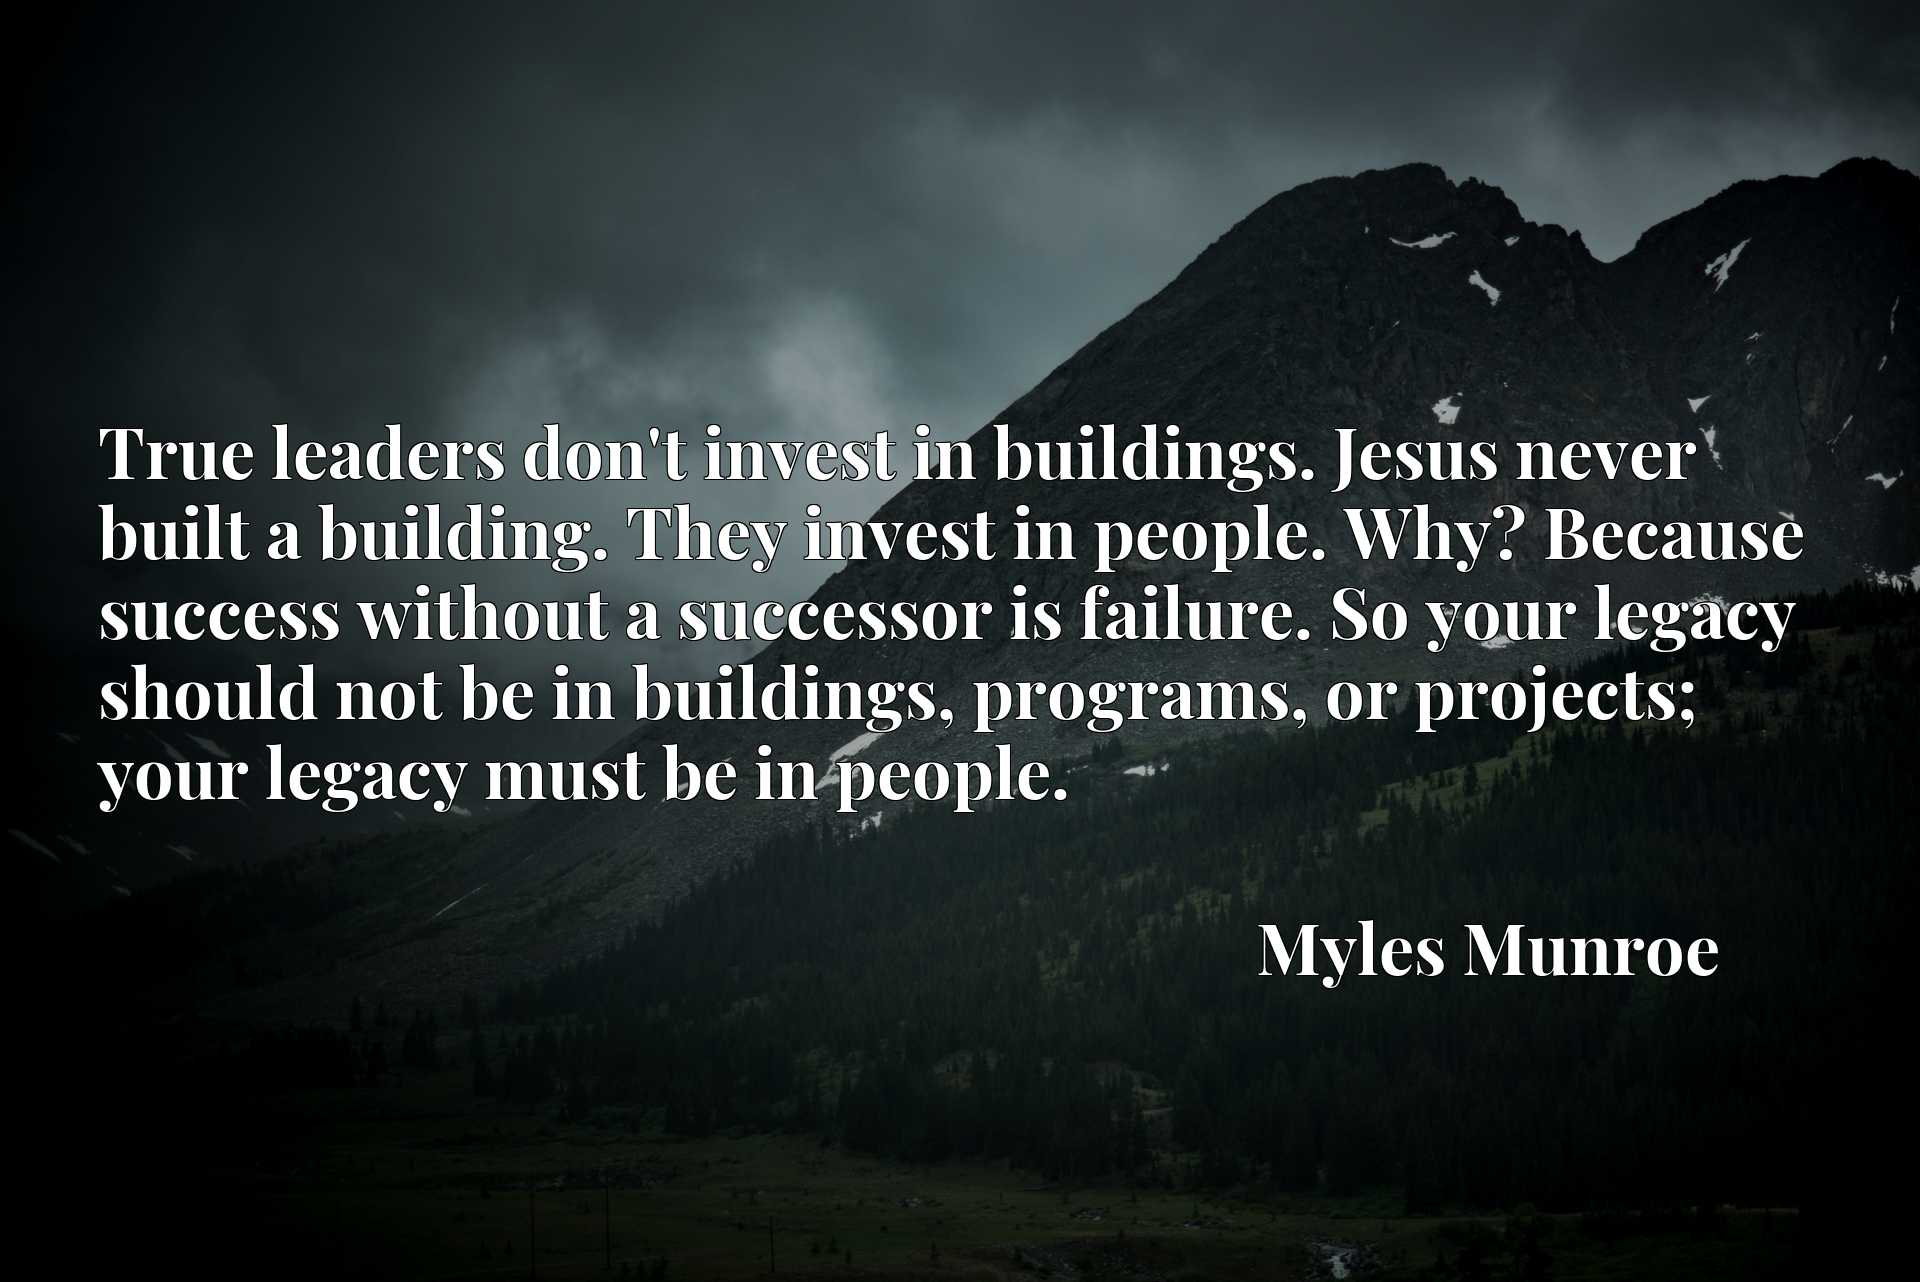 True leaders don't invest in buildings. Jesus never built a building. They invest in people. Why? Because success without a successor is failure. So your legacy should not be in buildings, programs, or projects; your legacy must be in people.